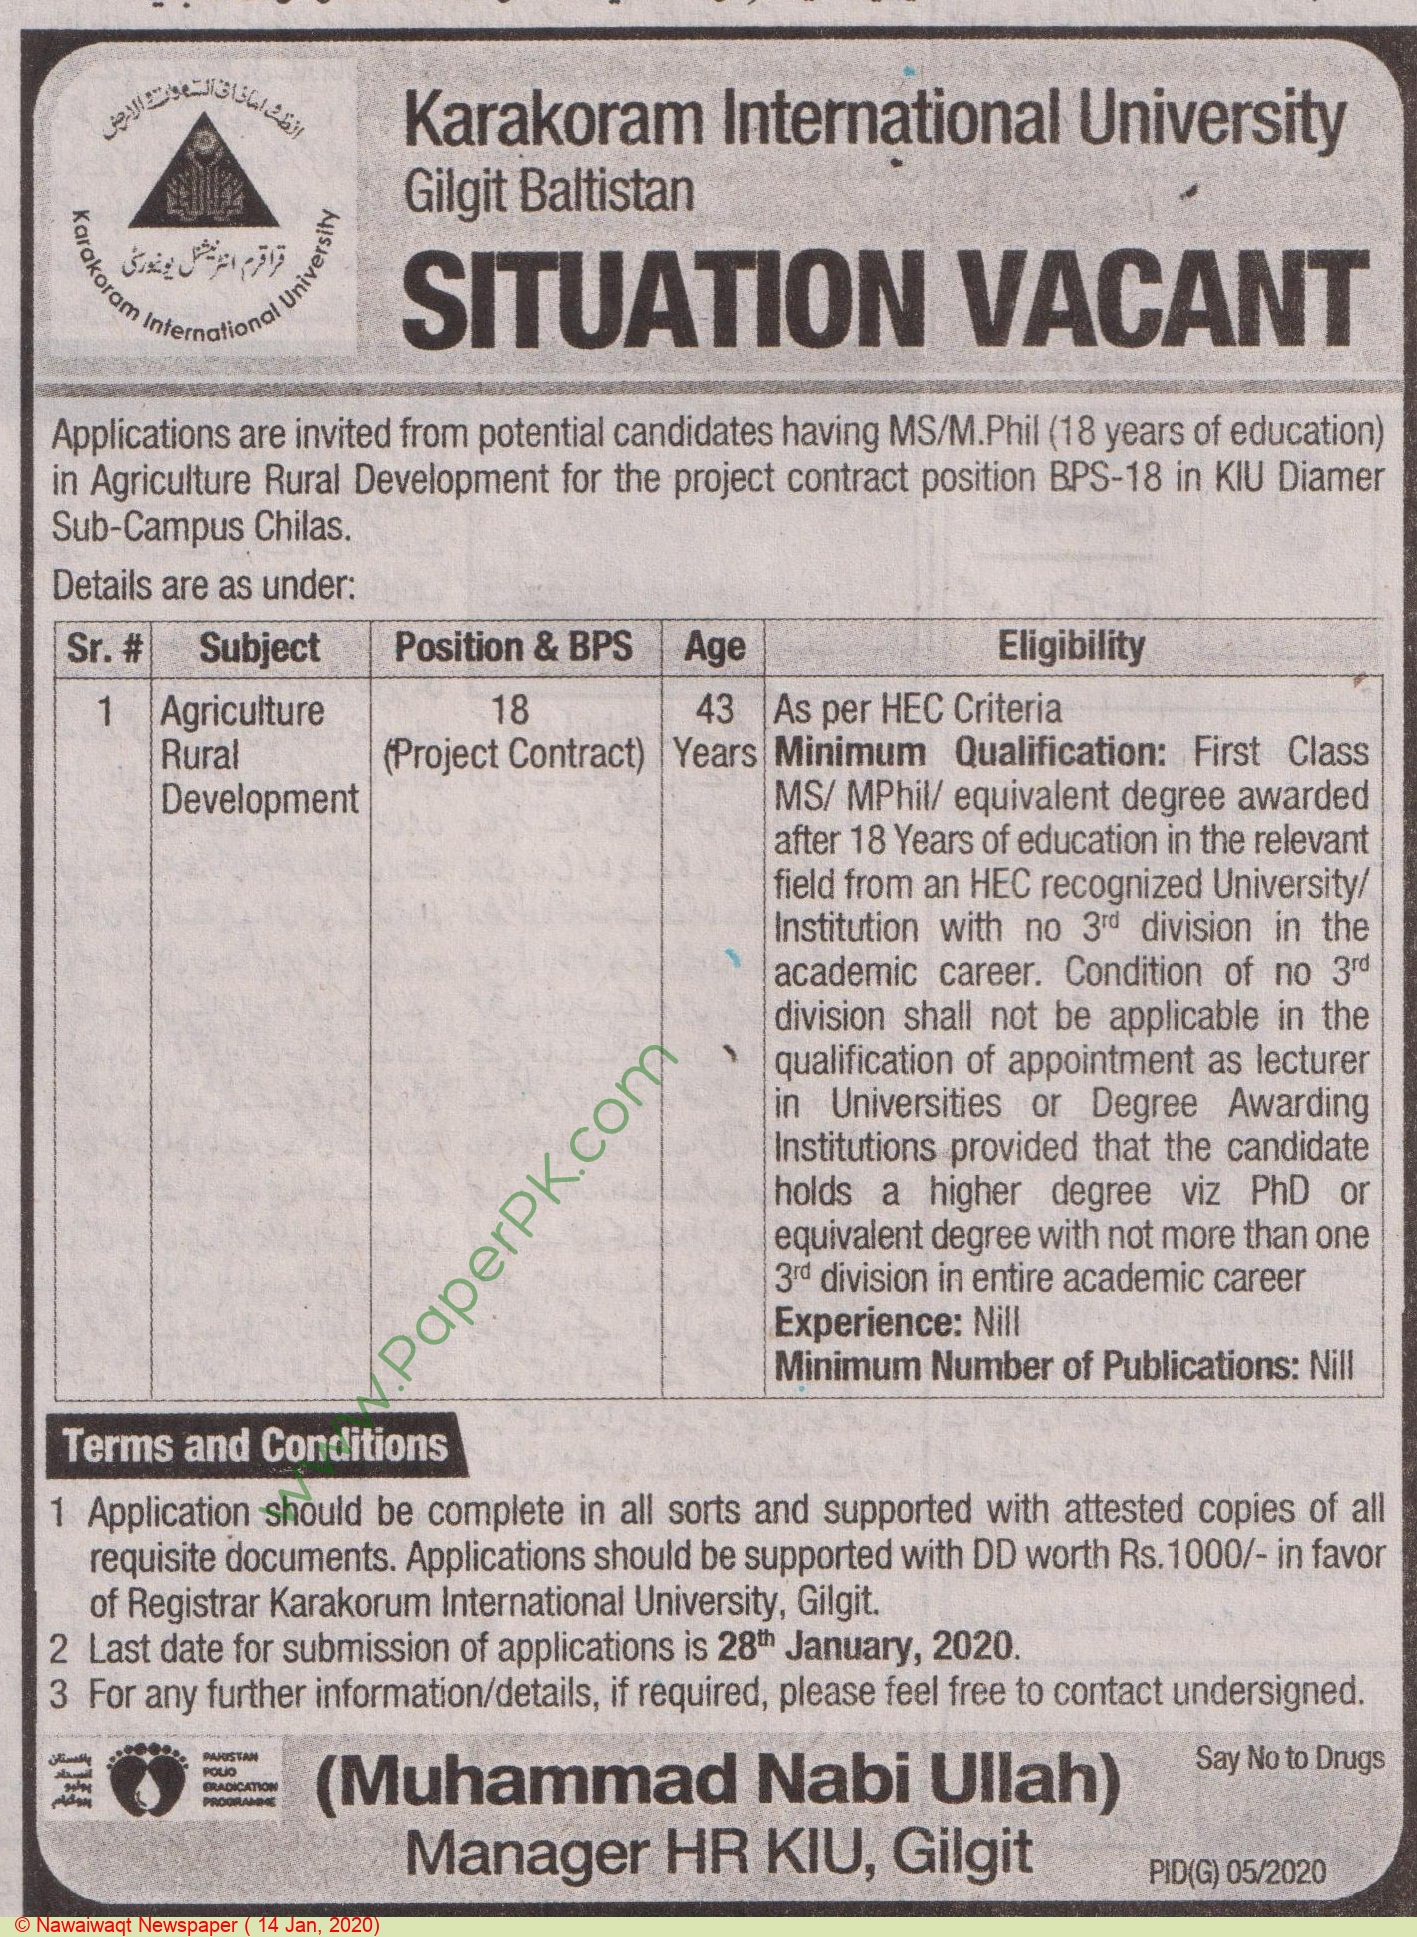 Karakoram International University jobs newspaper ad for Agriculture Rural Development in Akora, Gilgit, Karak